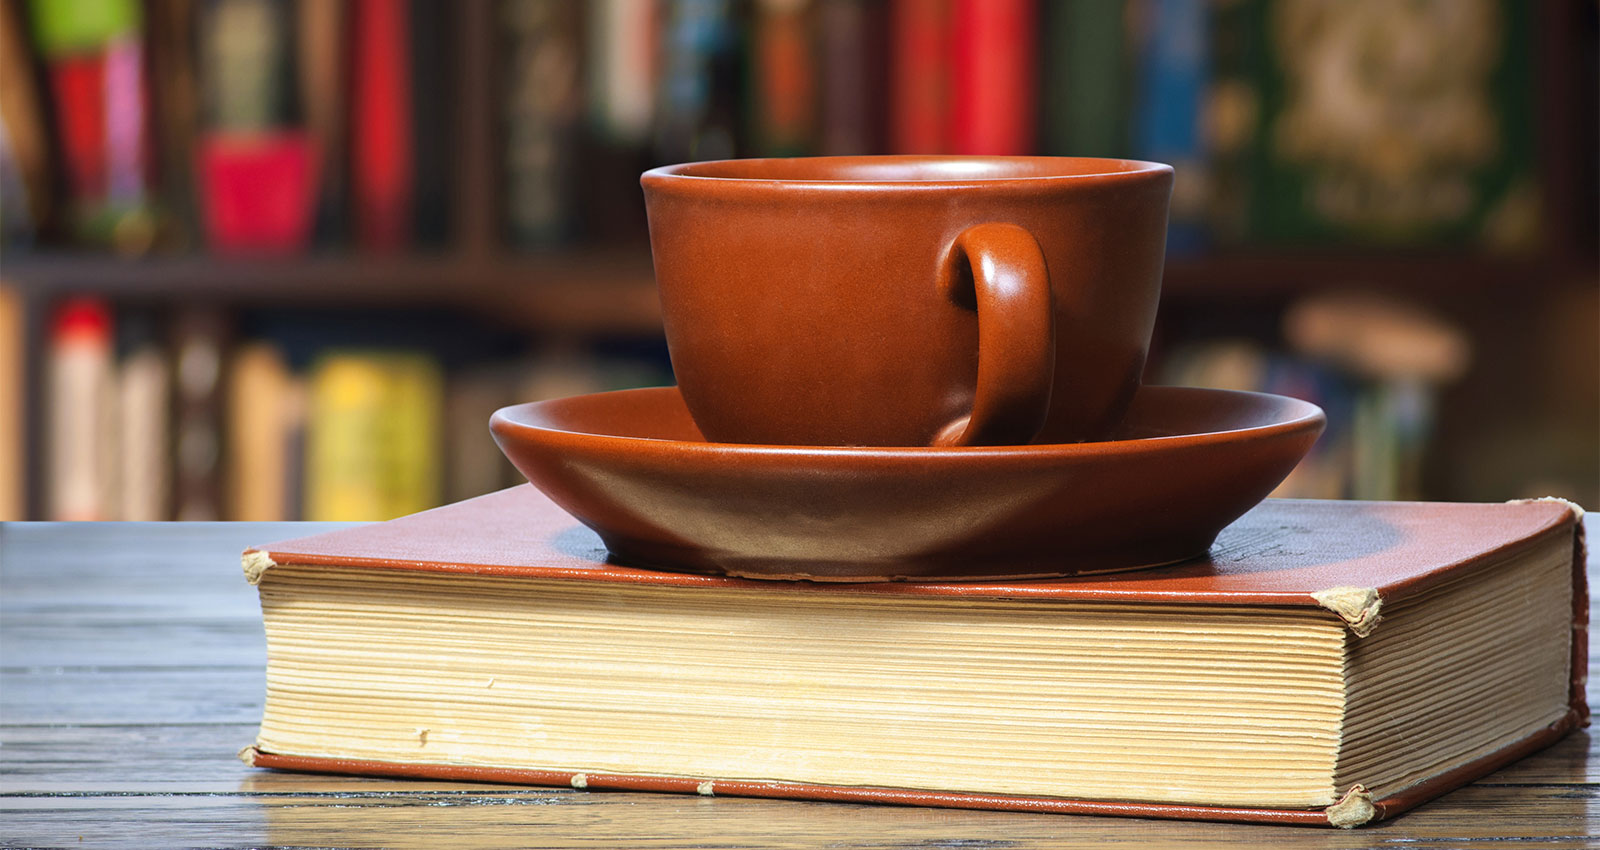 Cup and saucer place on top of a book.